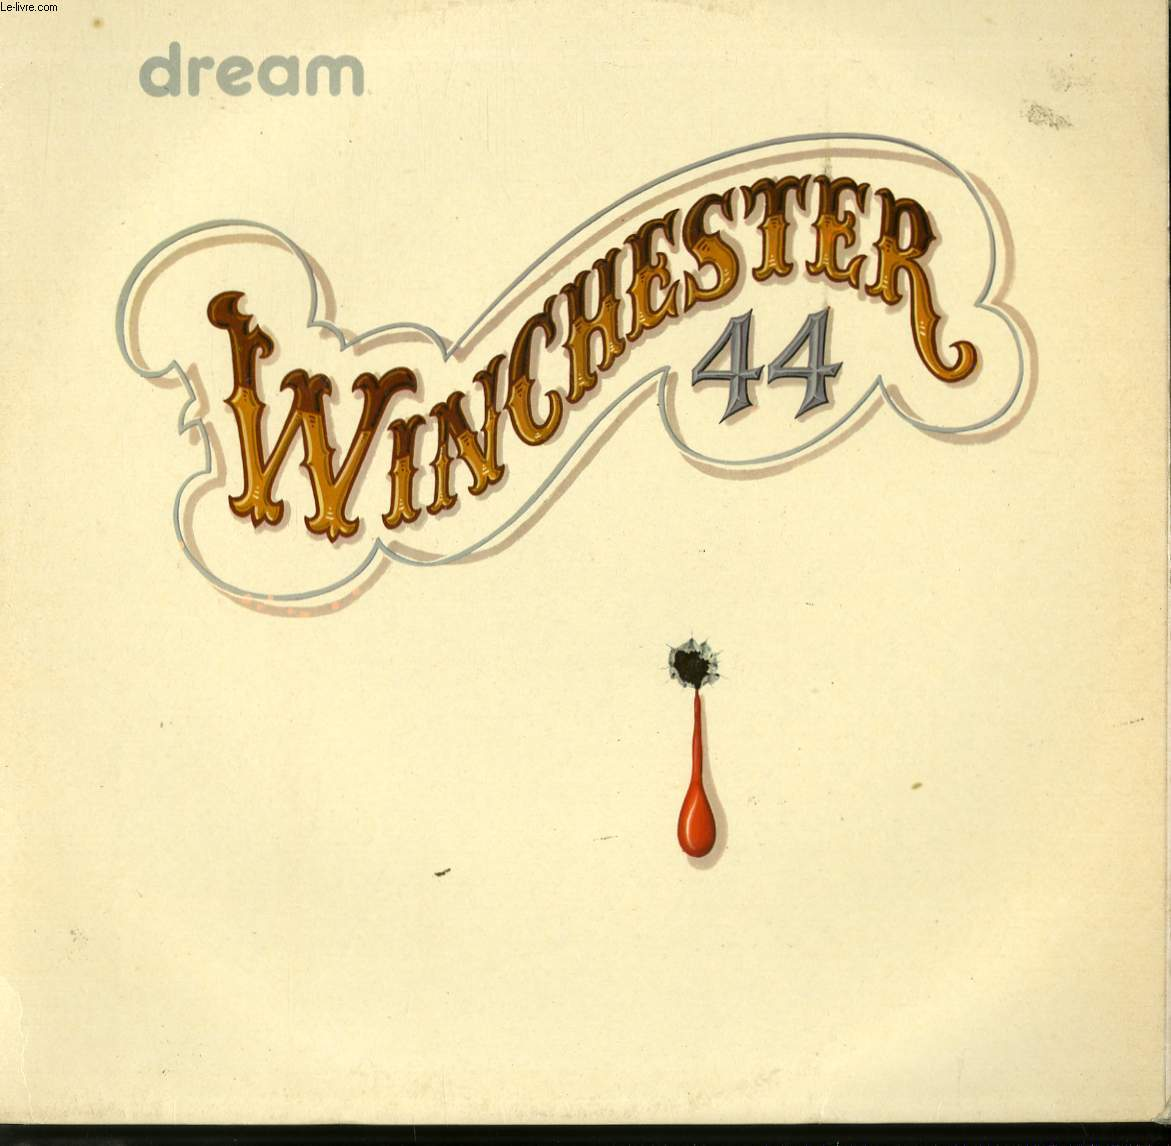 DISQUE VINYLE 33T DREAM. LET'S MAKE LOVE TOGETHER.